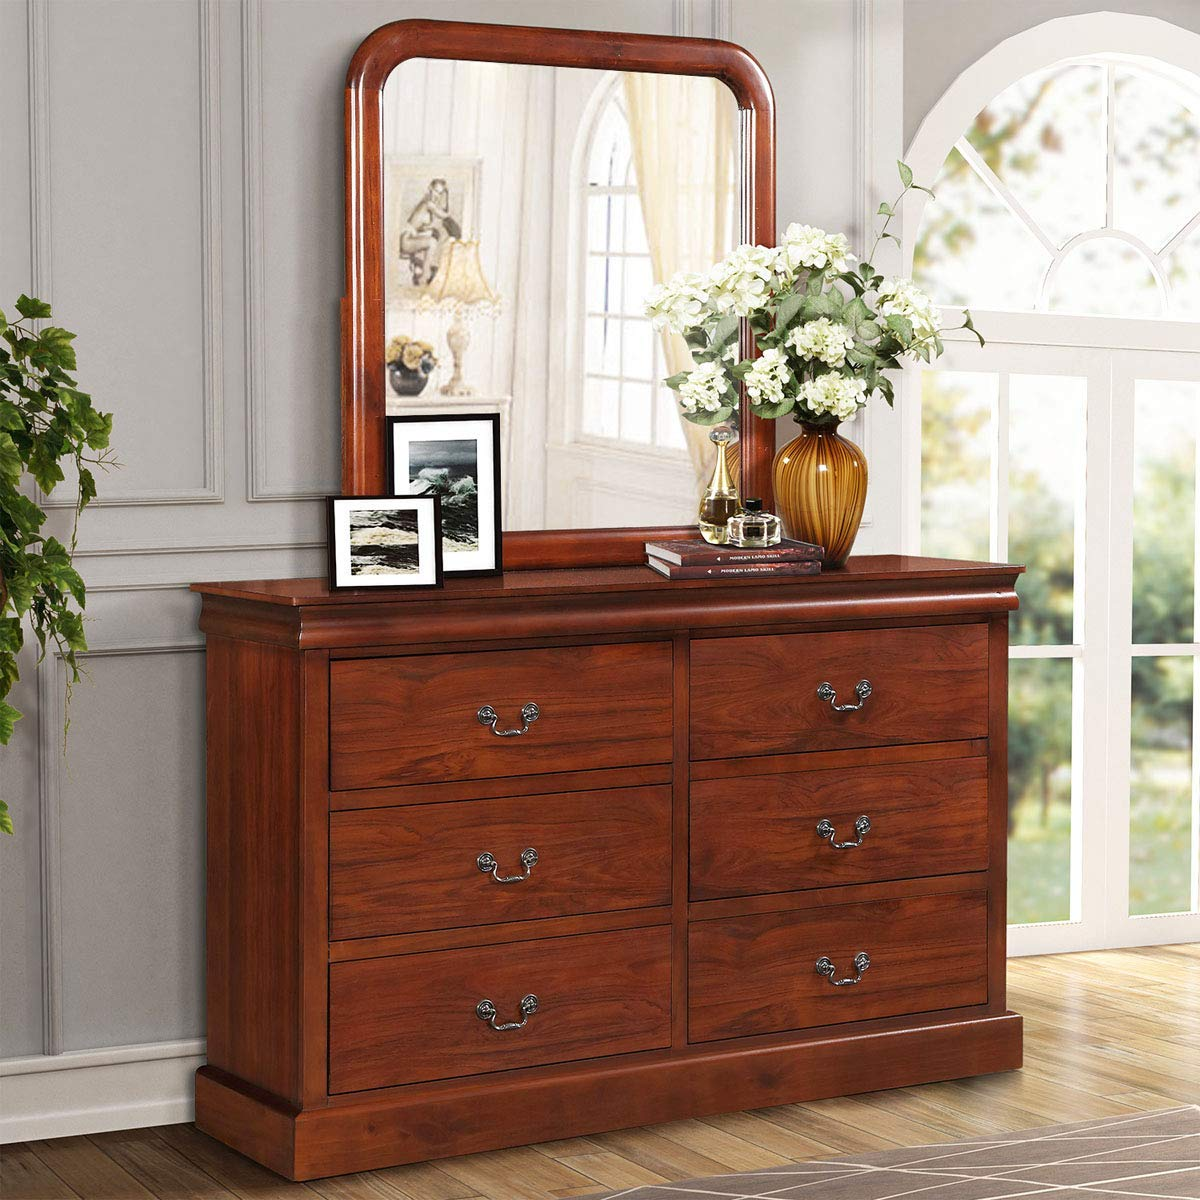 Harper Bright Designs 6 Drawer Double Dresser Wood Dressing Table With Mirror Bedroom Organizer Cabinet Chest Walnut Finish